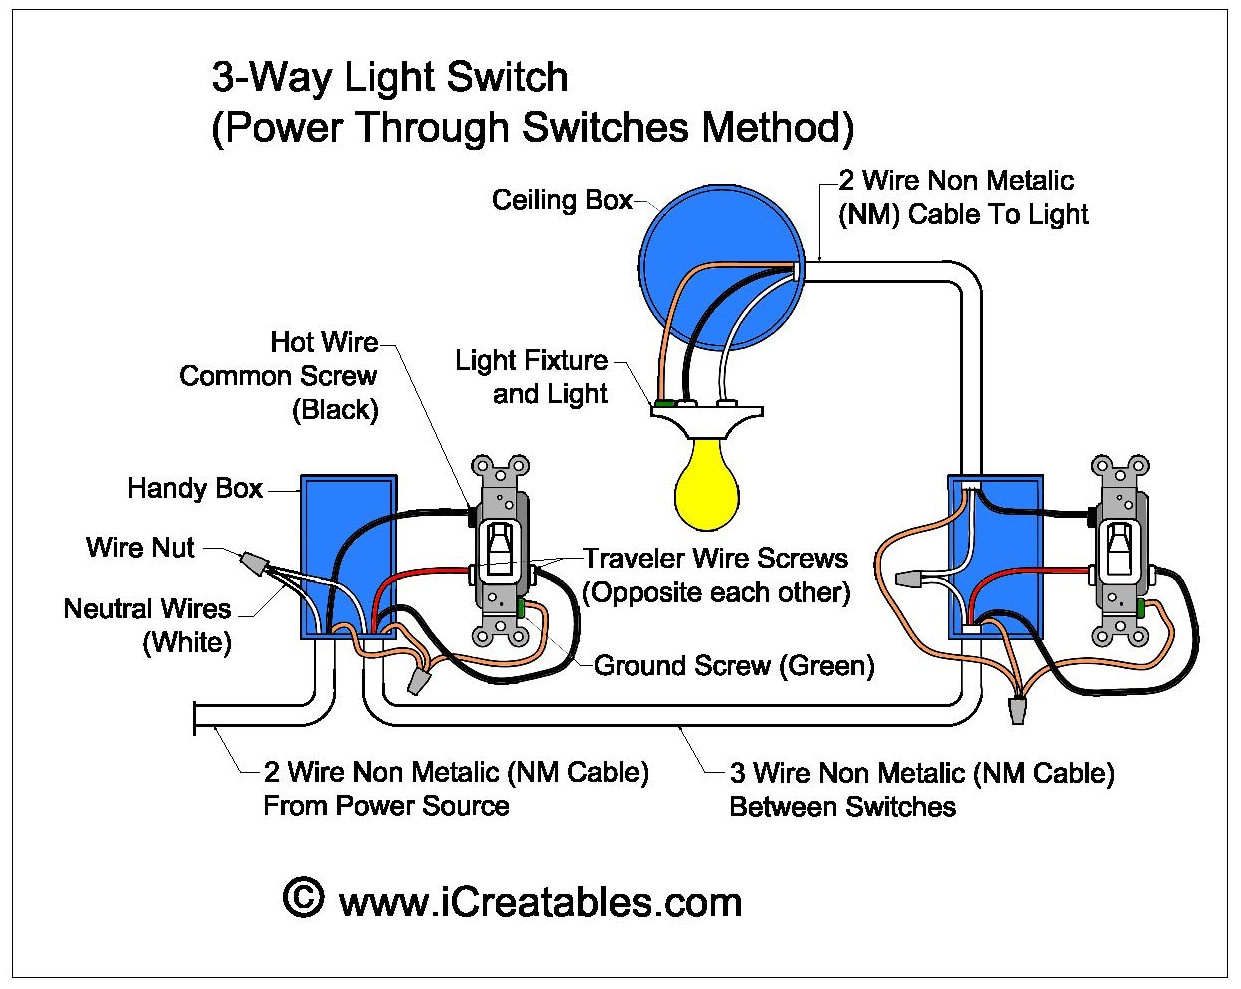 Wind Less Three Wire Switch Diagram - Fuse Box For Jeep Grand Cherokee |  Bege Wiring Diagram | Wind Less Three Wire Switch Diagram |  | Bege Place Wiring Diagram - Bege Wiring Diagram